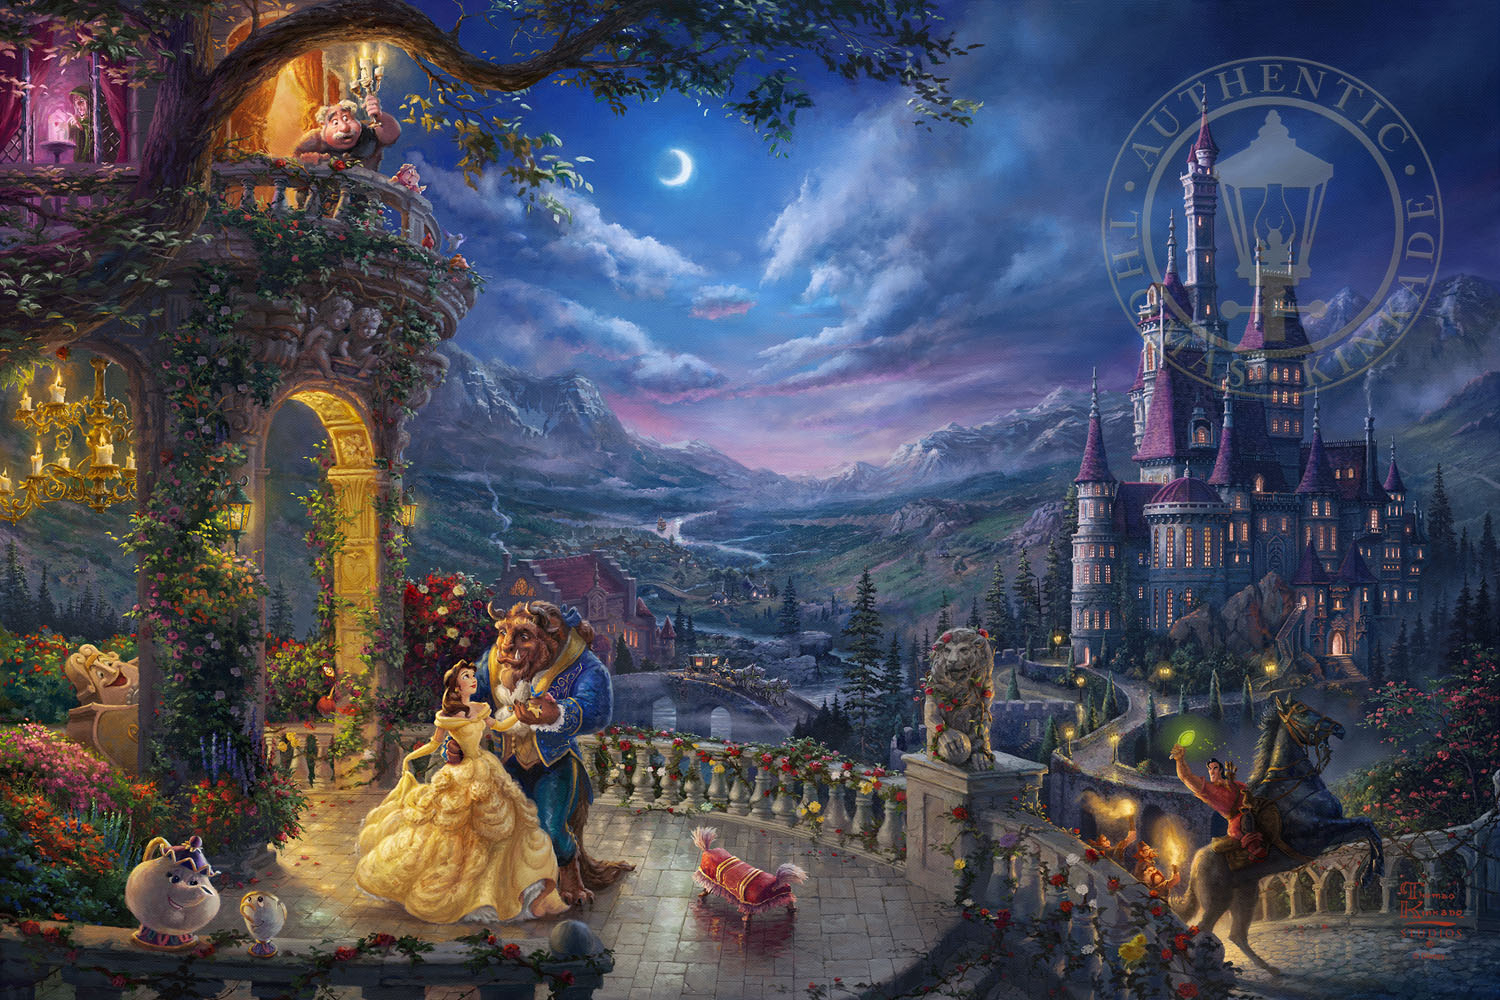 Art Disney: Beauty And The Beast Dancing In The Moonlight